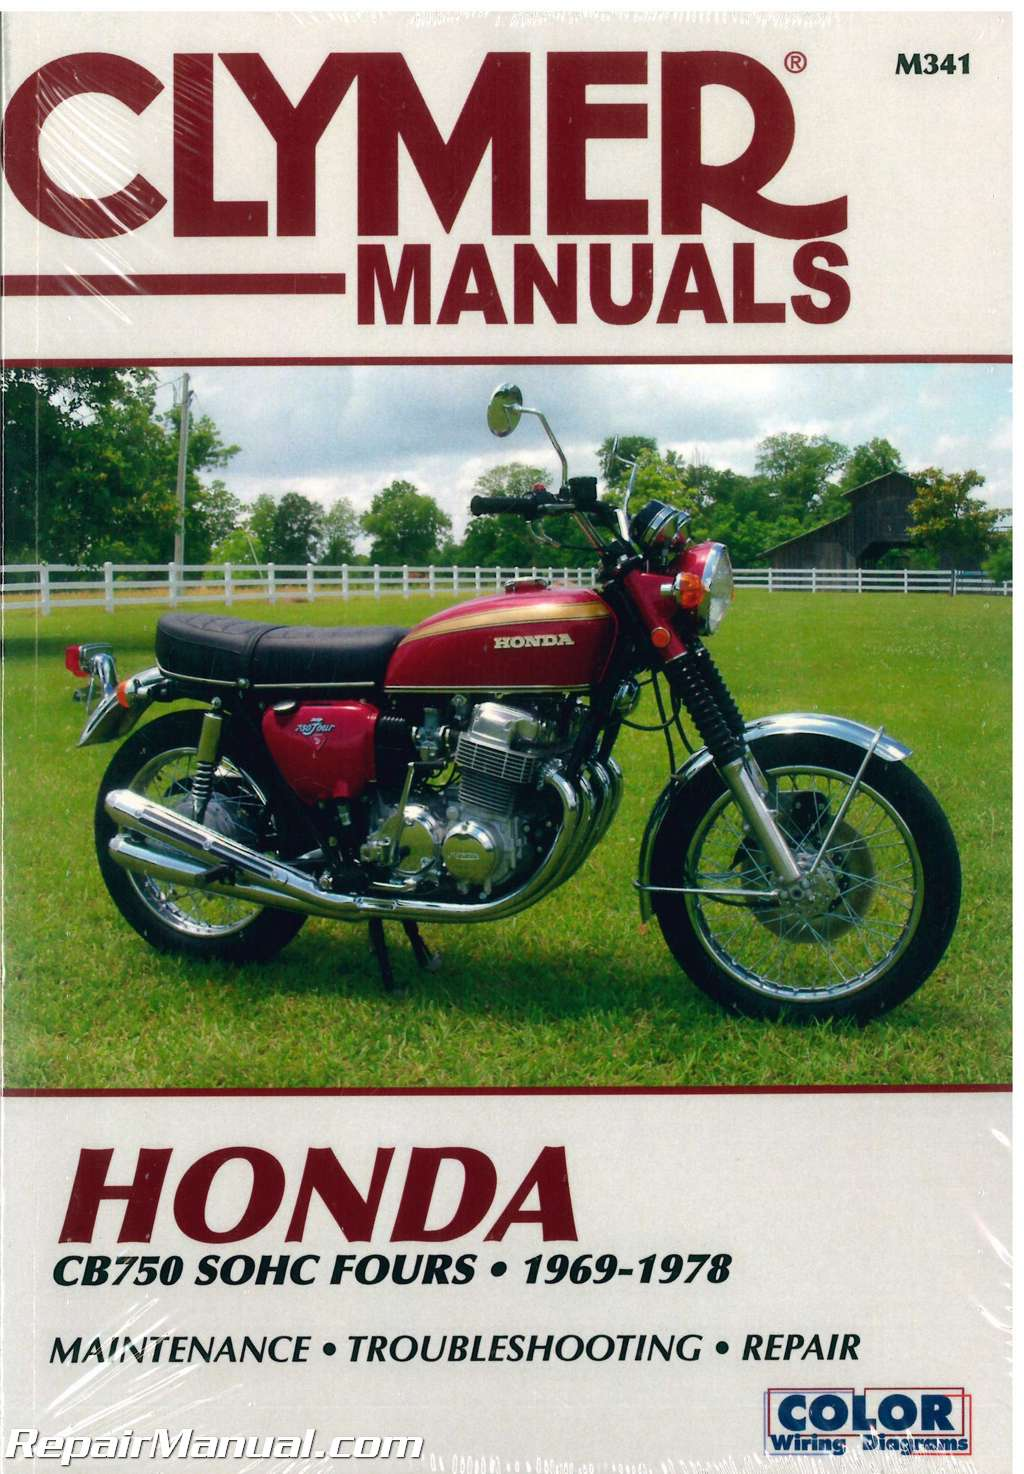 1969 1978 honda cb750 sohc fours motorcycle repair manual clymer rh repairmanual com